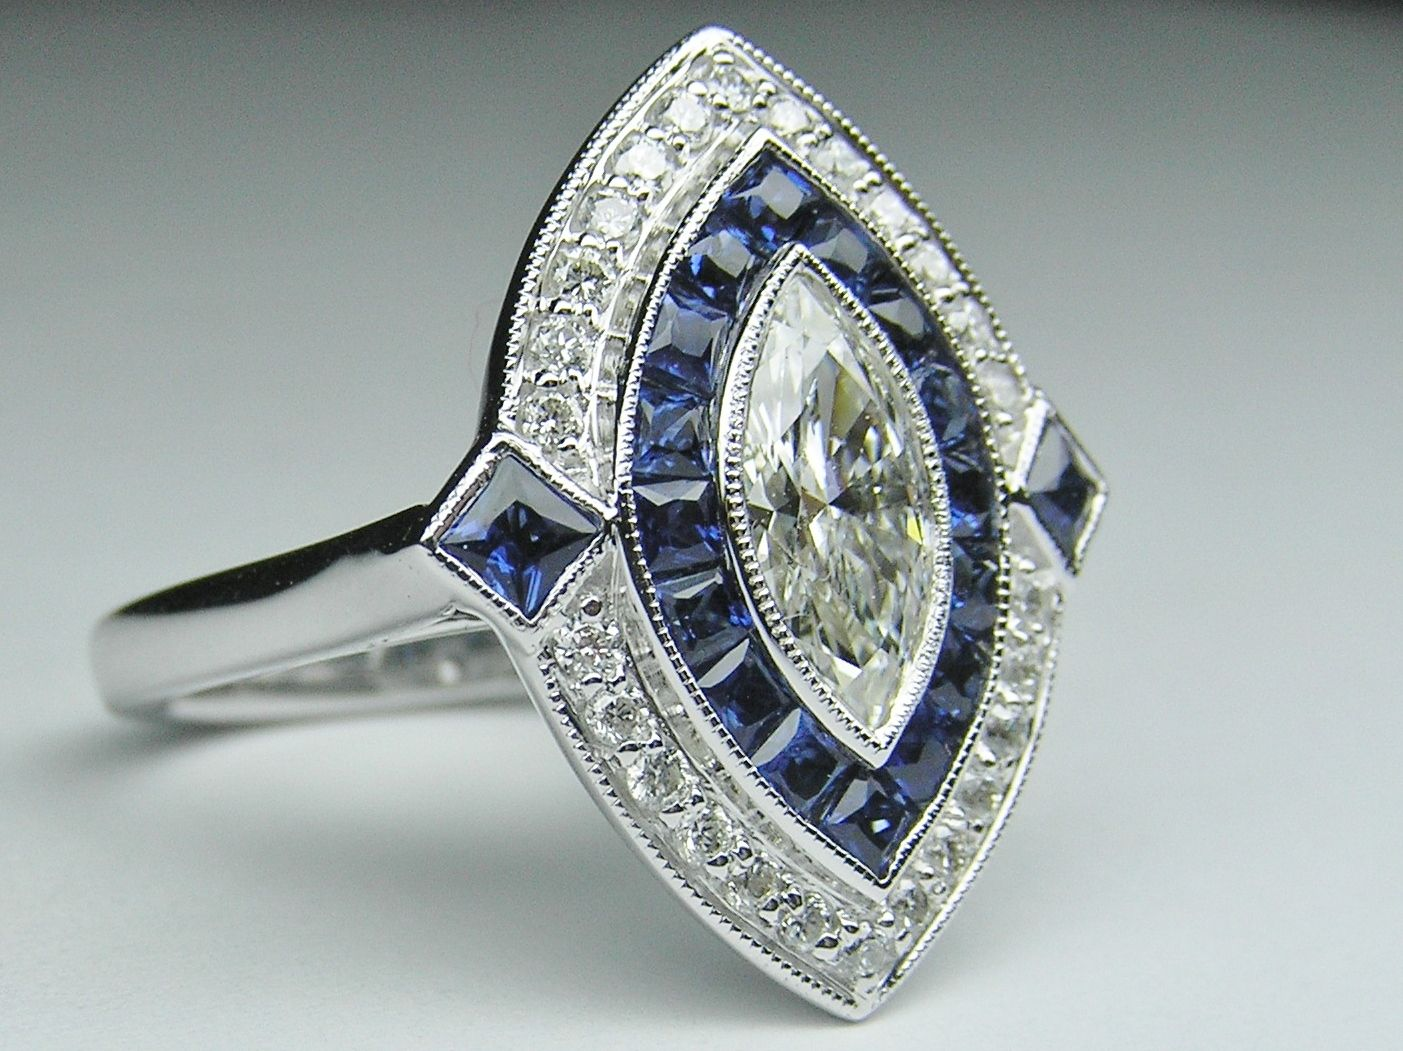 art deco wedding band Marquise Diamond Art Deco Engagement ring with Blue Sapphire Diamond Halo in 14K White gold